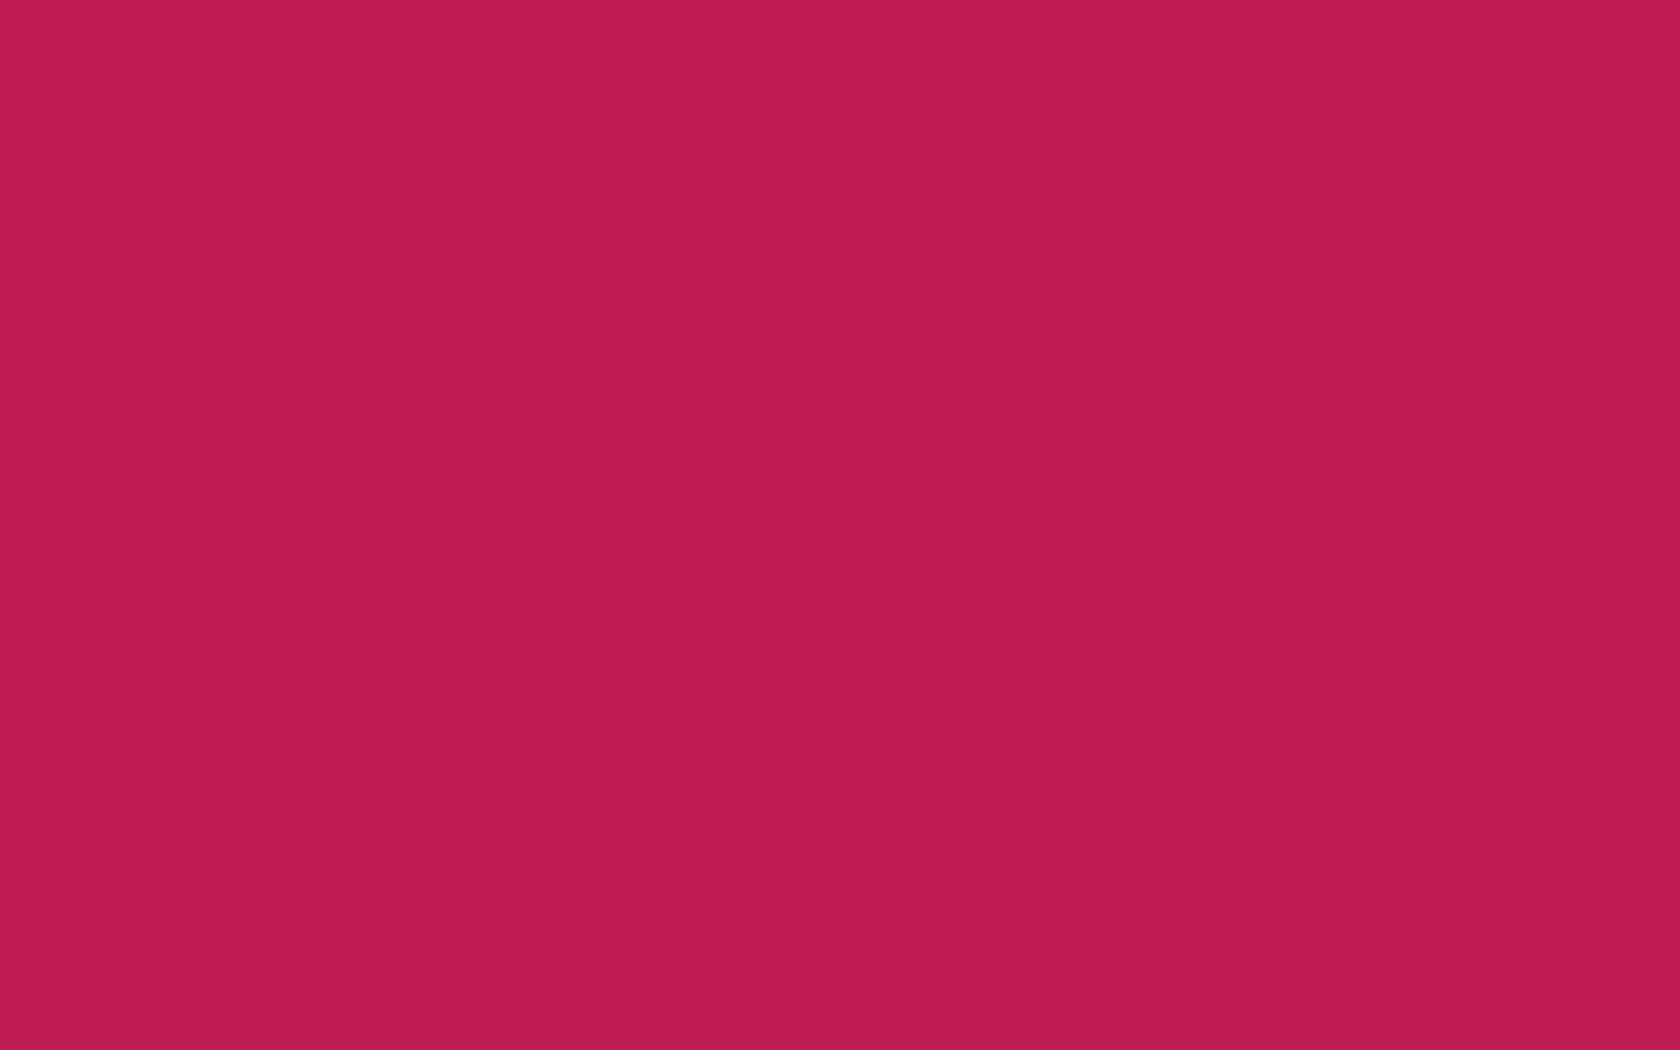 1680x1050 Rose Red Solid Color Background